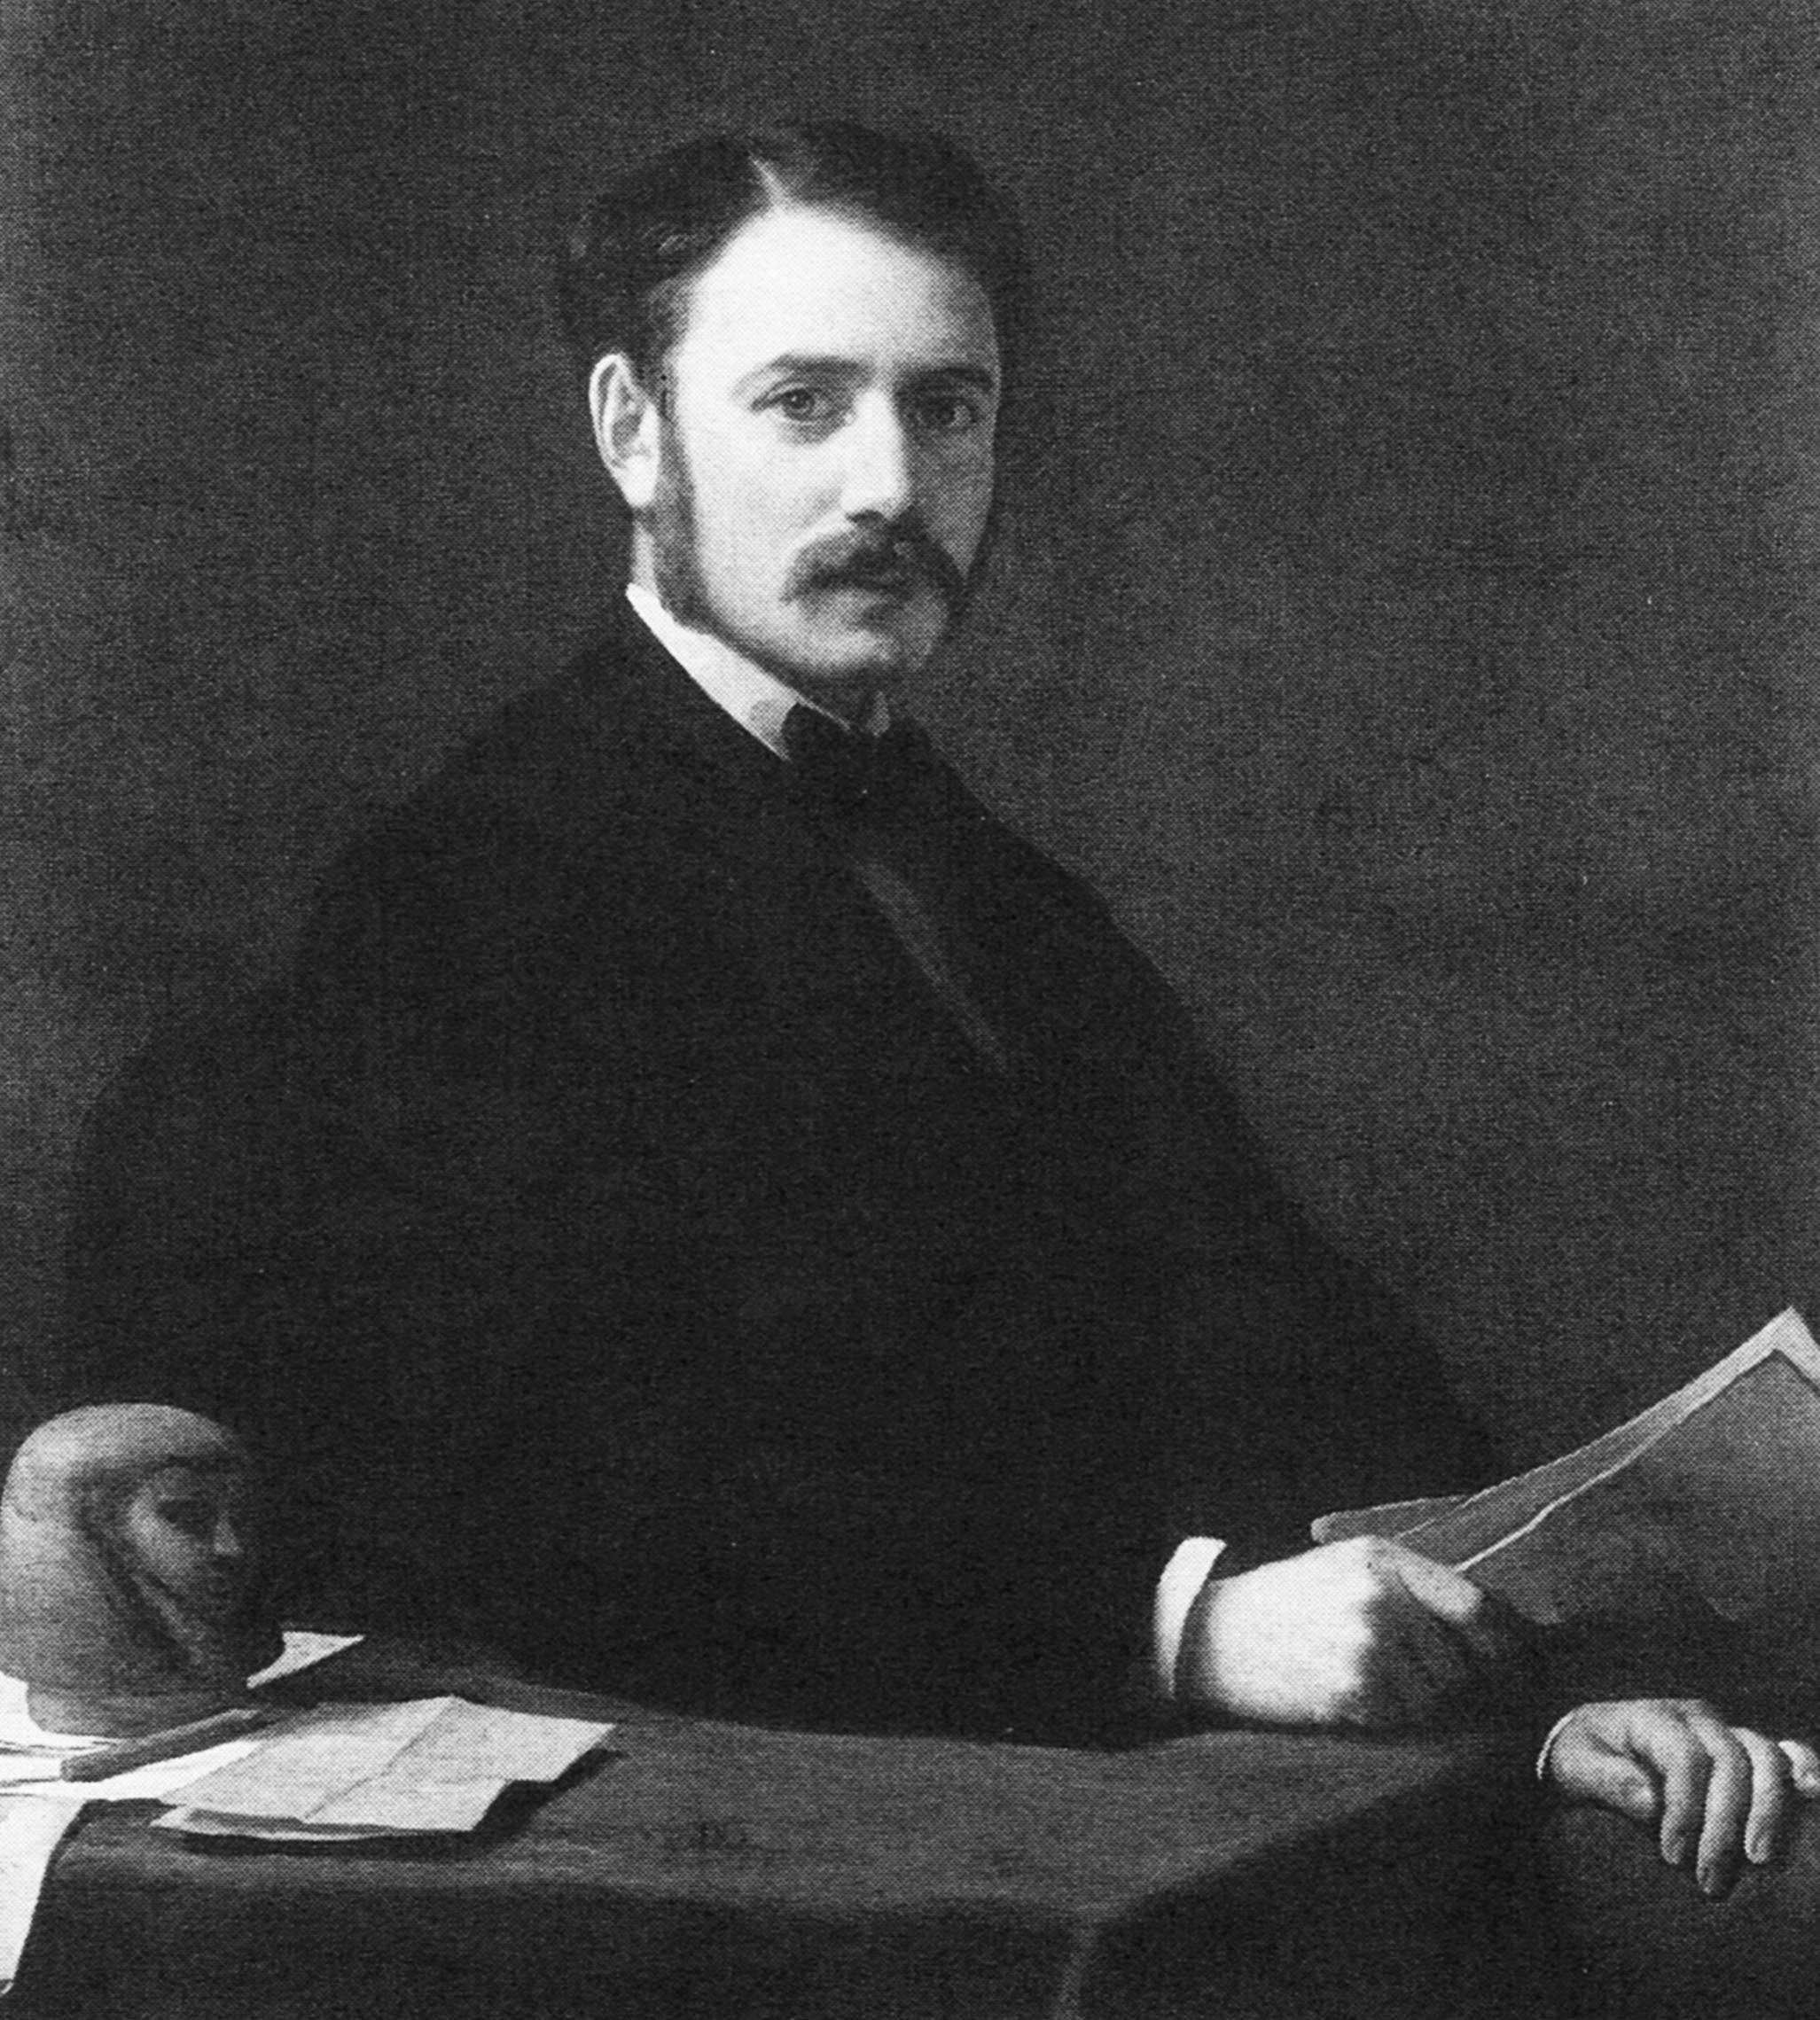 Barron Frederick Emile d'Erlanger, 1869. Source: Wayne Onkst, ed., From Buffalo Trails to the Twenty-First Century: A Centennial History of Erlanger, Kentucky.